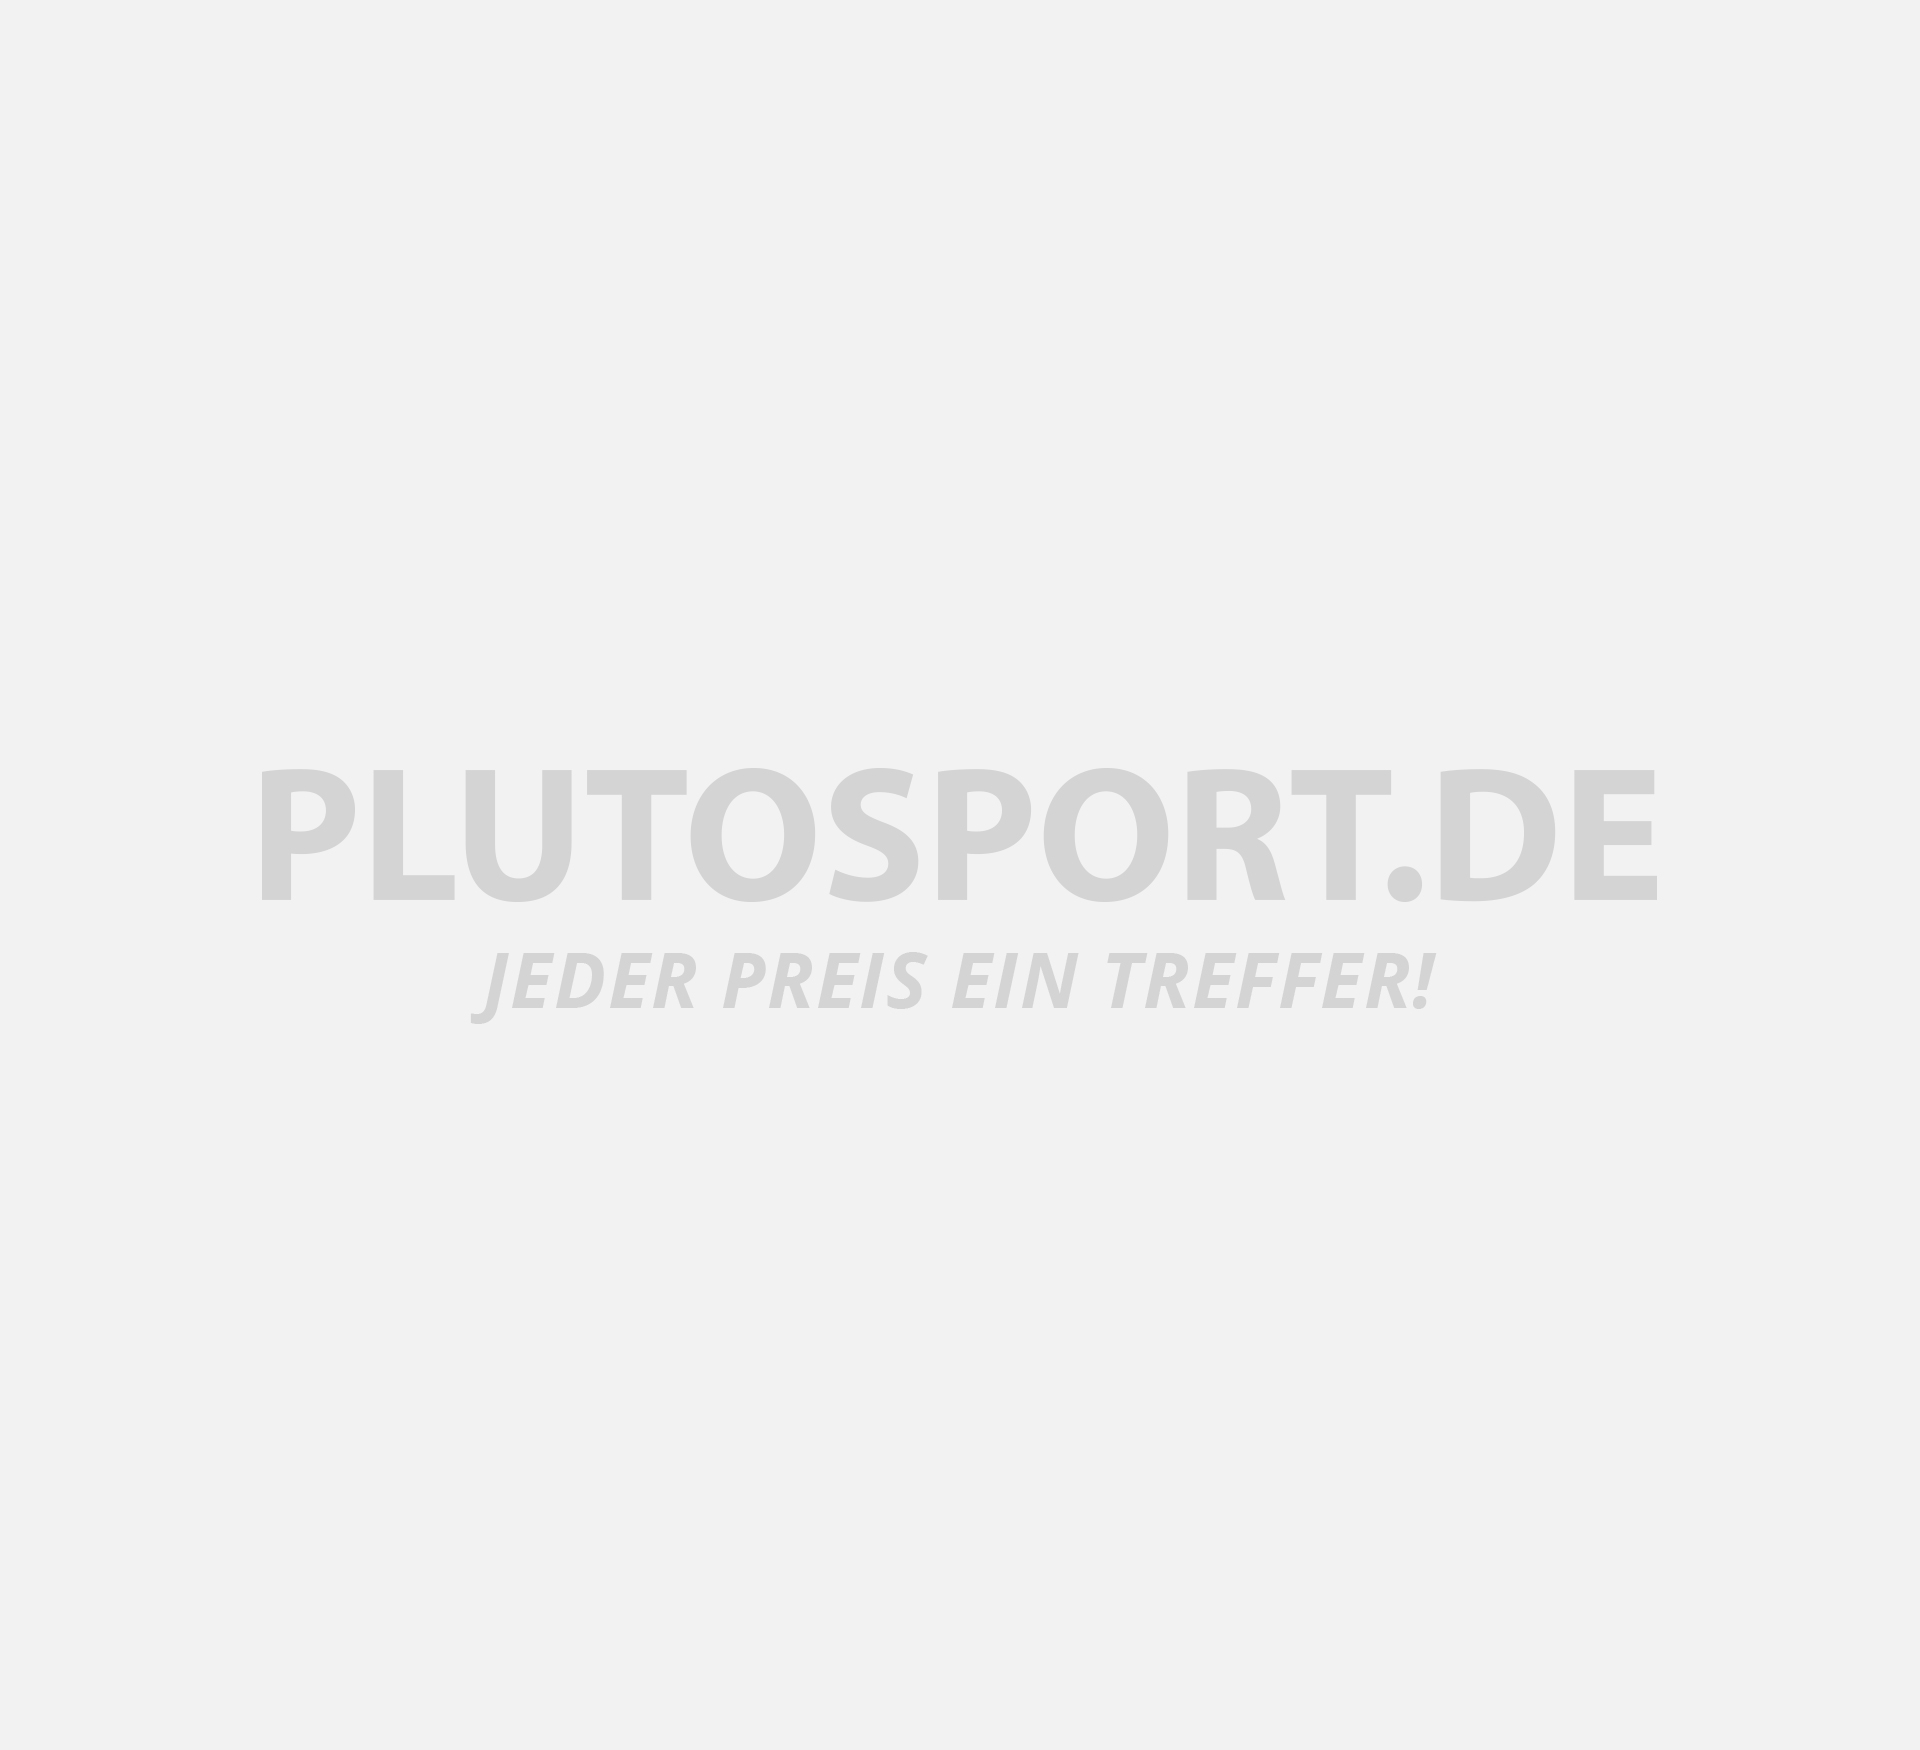 Wilson Killer Crossover Indoor / Outdoor Basketball